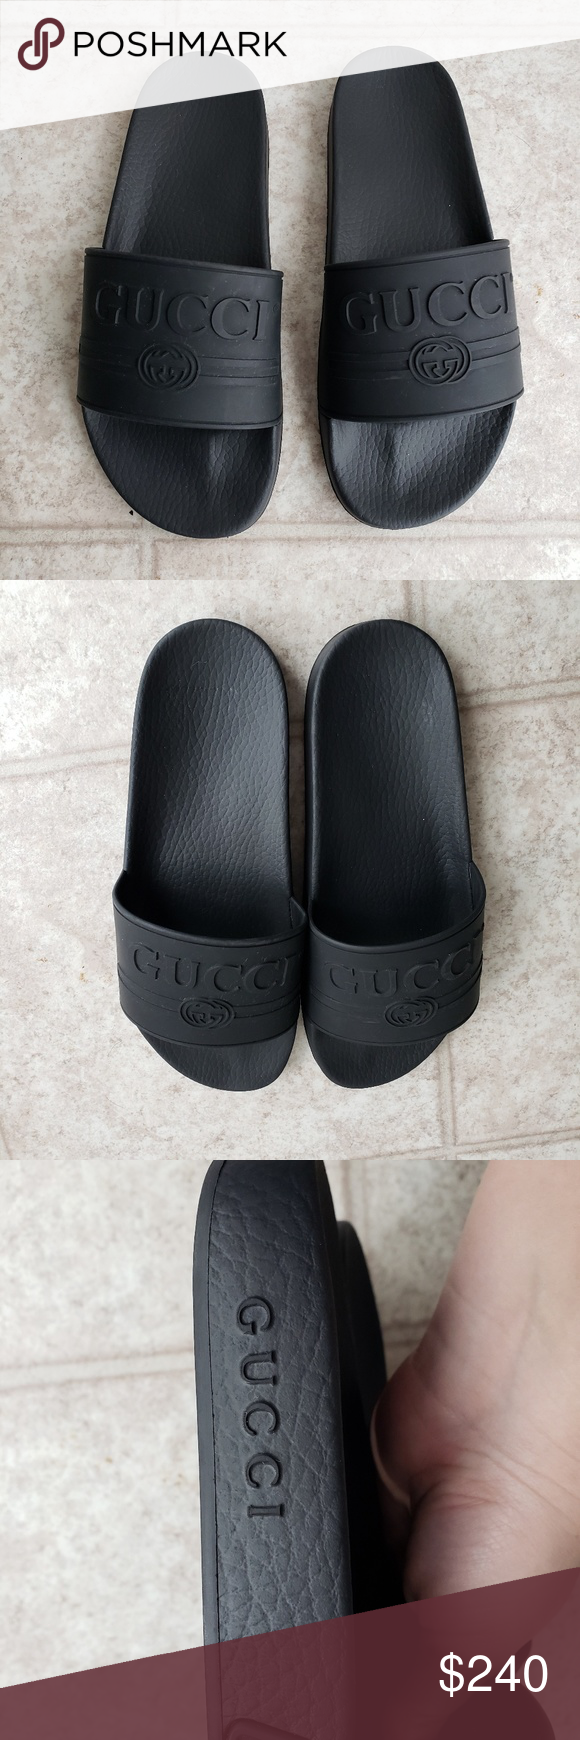 23b7c622c93 Gucci Pursuit Black Logo Rubber Slides 8 Men 10 These were only worn twice.  No box or bag. These are a men s size 8 but i m a women s size 10 and they  ...